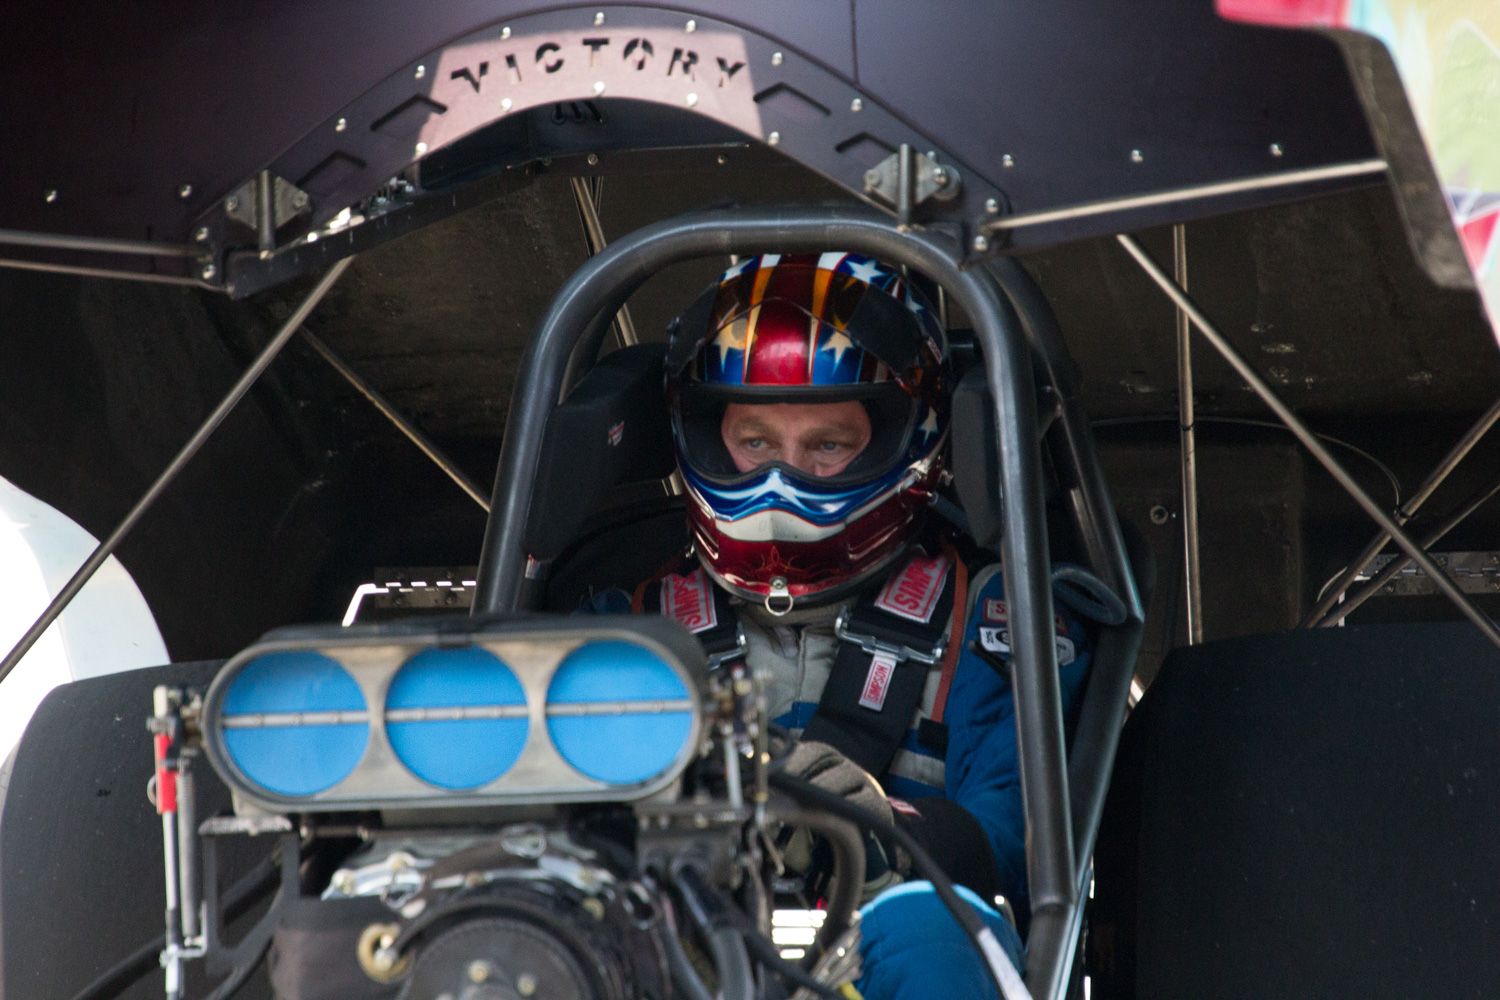 Dan Horan Jr. in his Funny Car